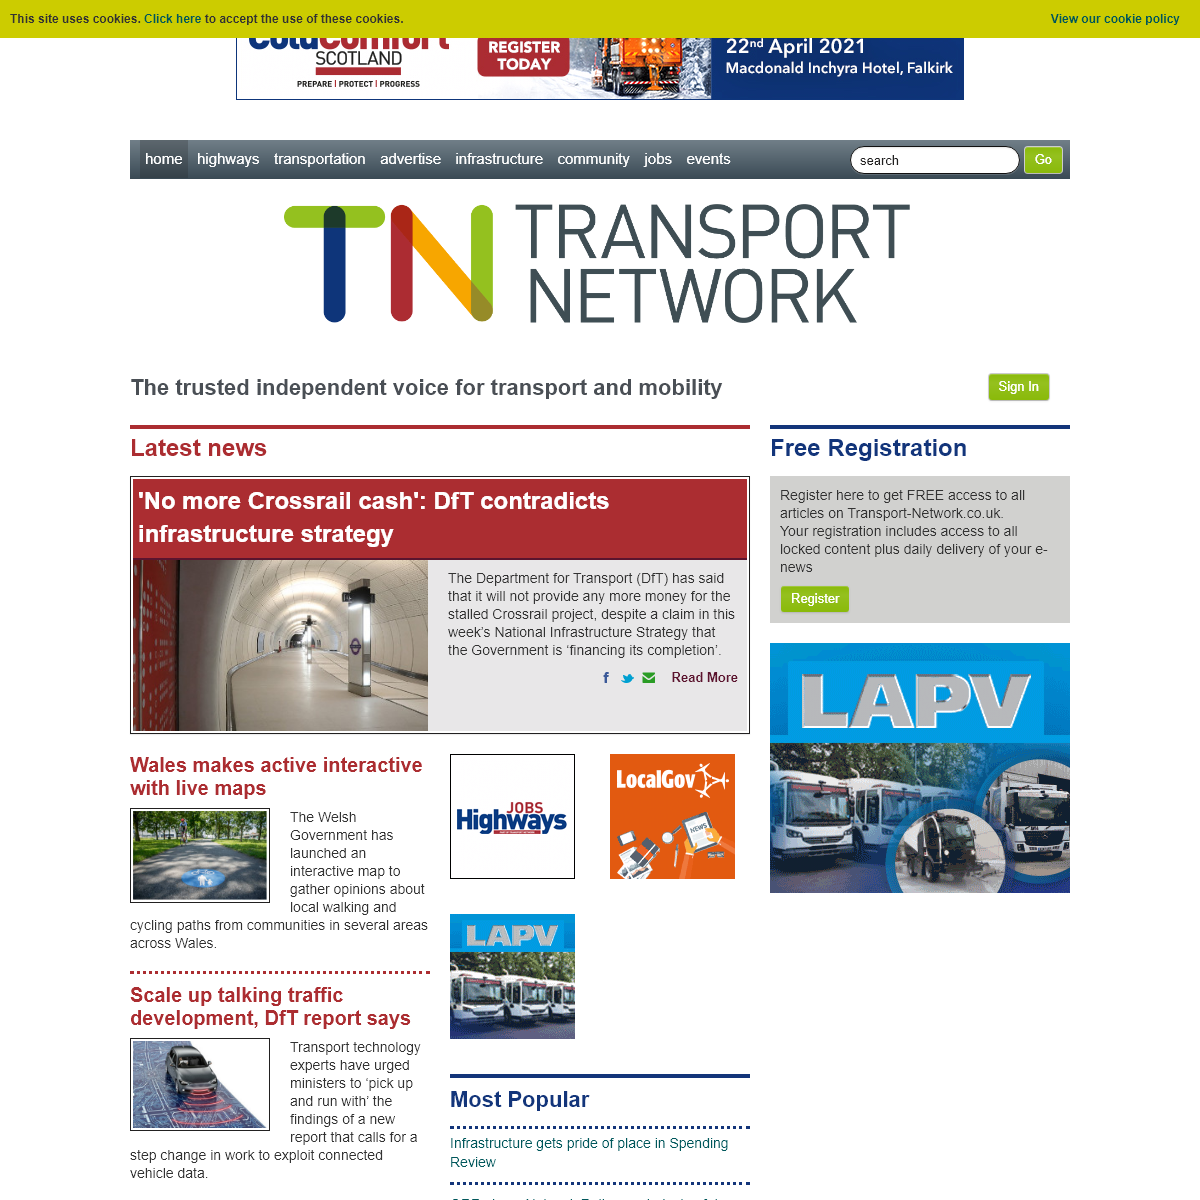 The Transport Network